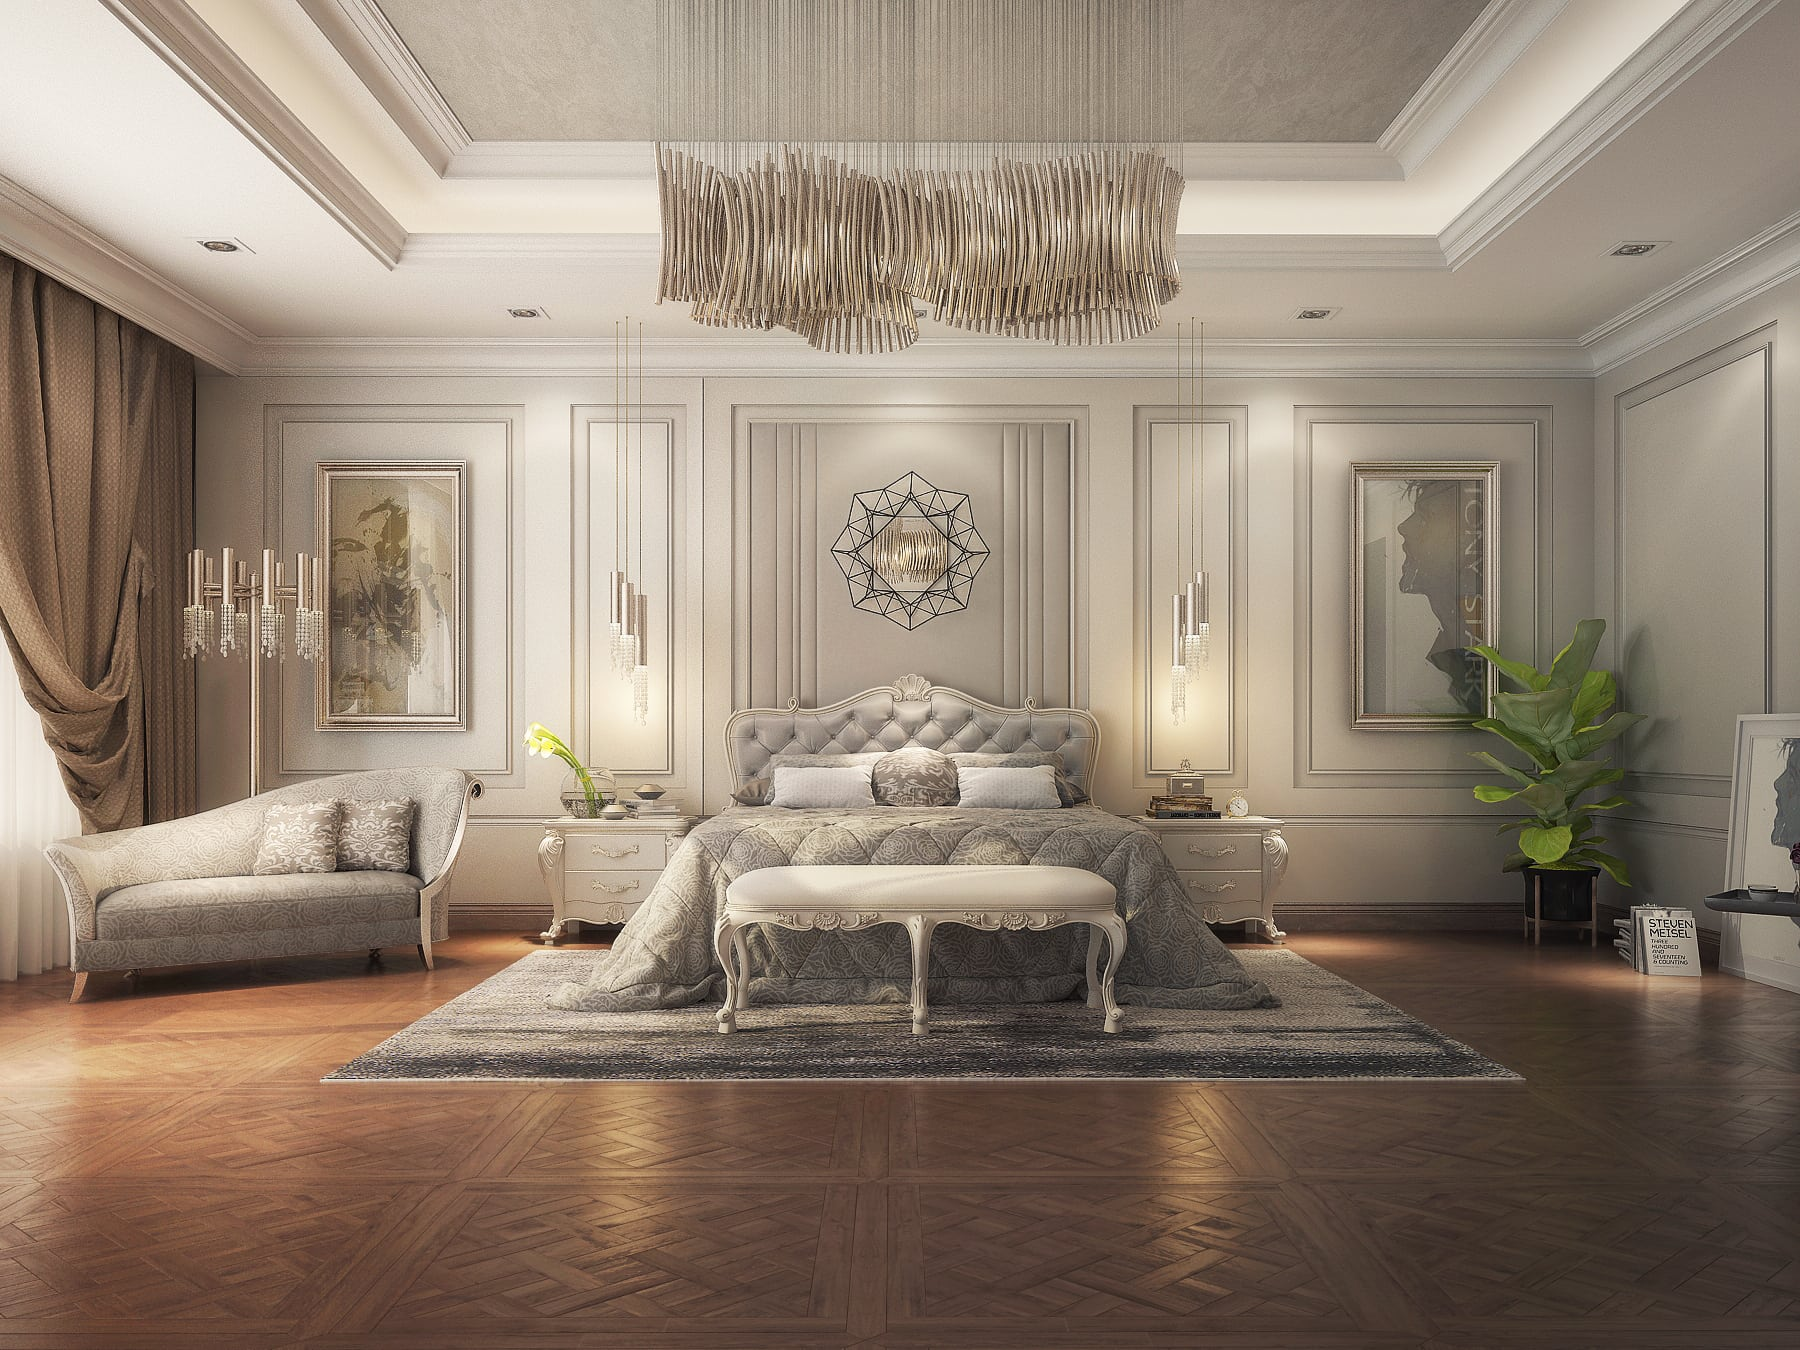 Realistic Classic Master Bedroom Design 3DS Max Model ... on Model Bedroom Ideas  id=33829